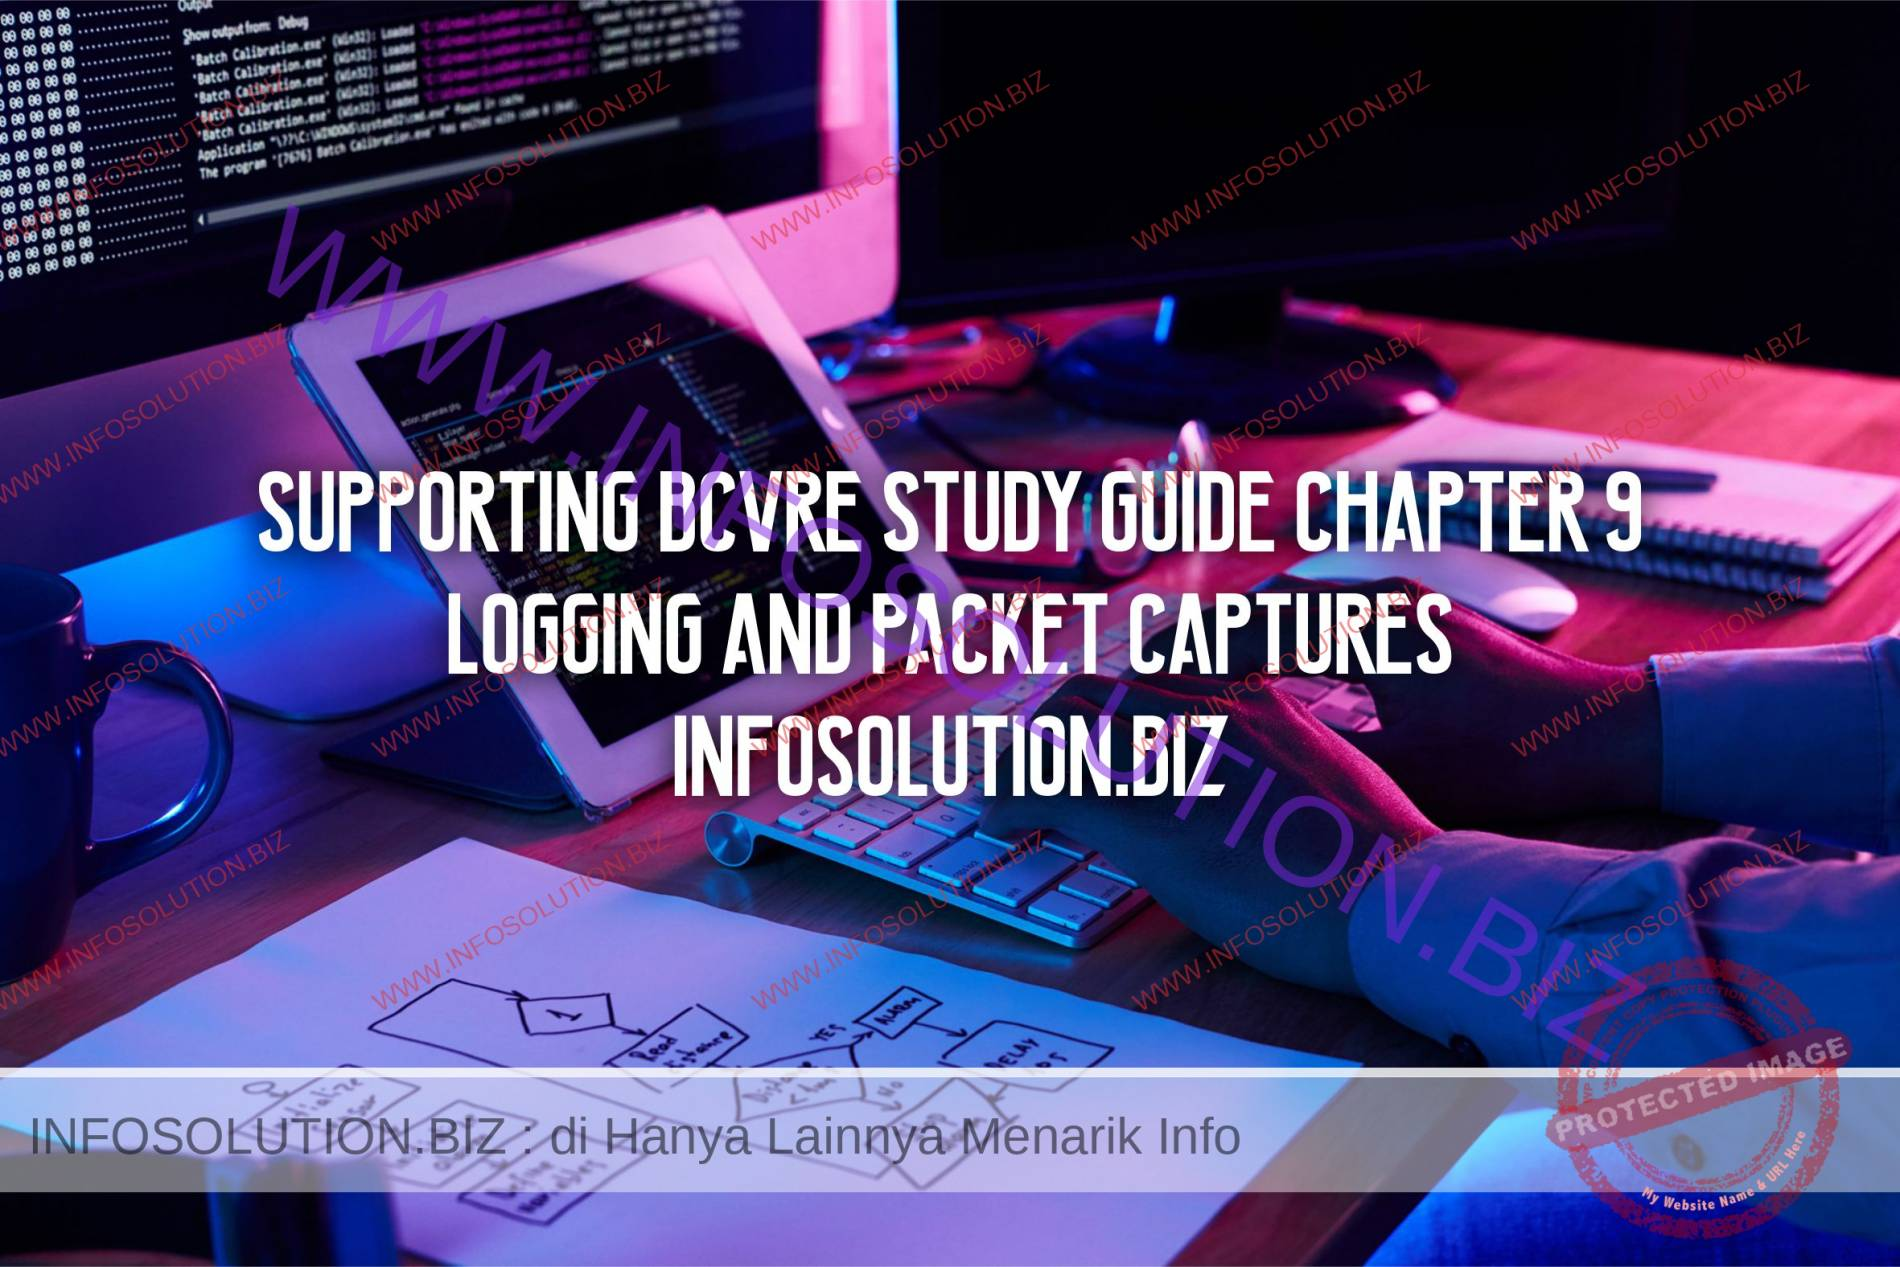 Supporting BCVRE Study Guide Chapter 9 Logging and Packet Captures